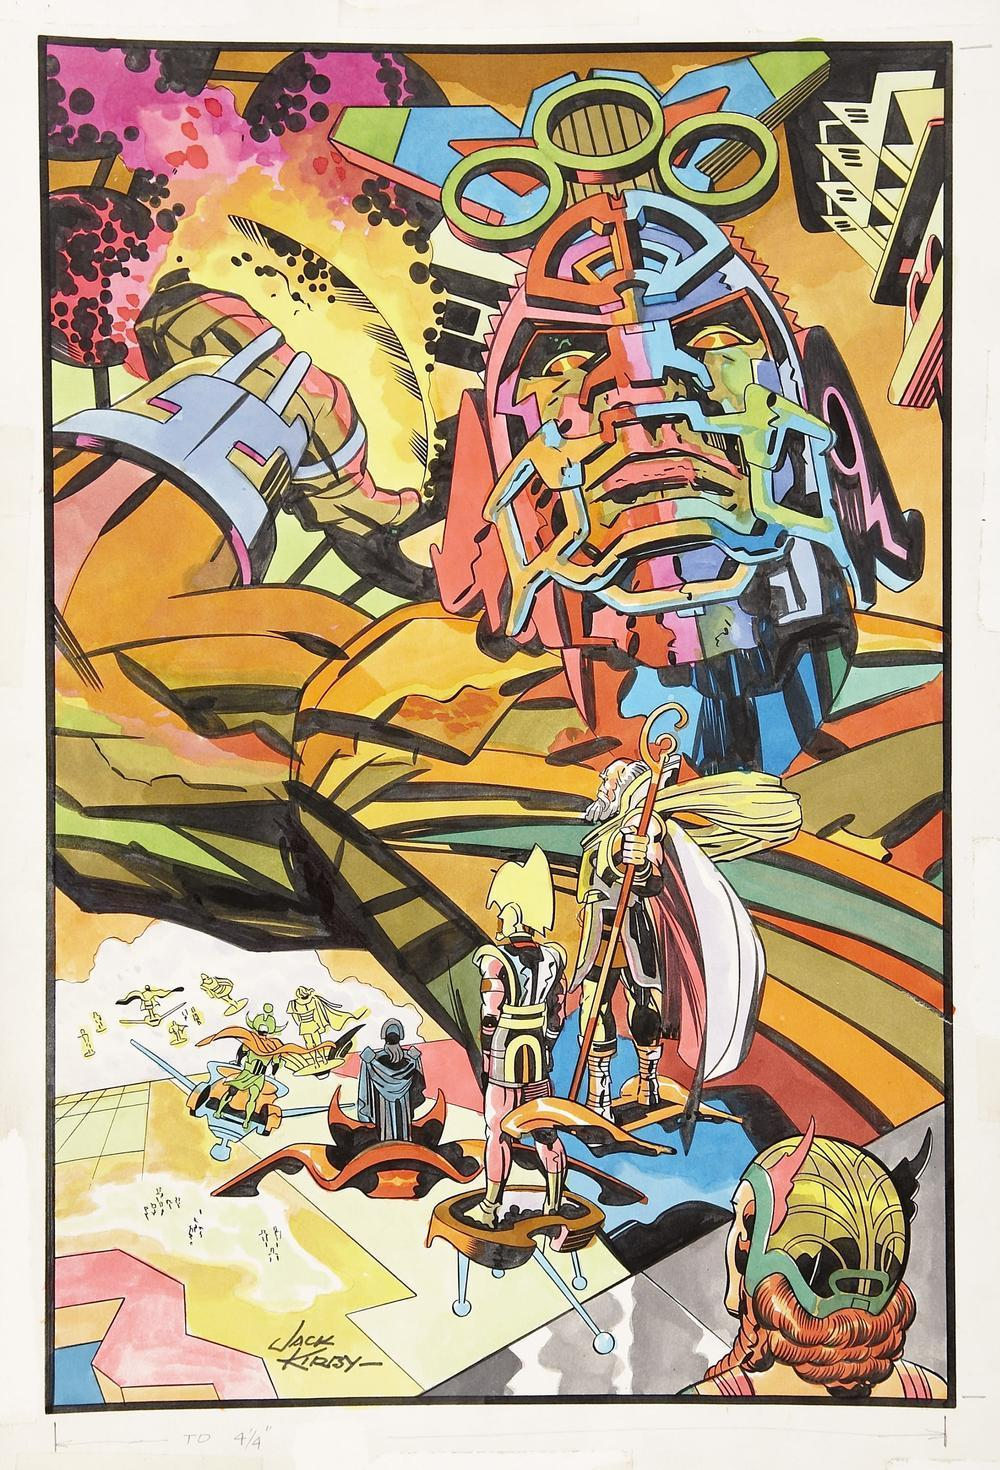 Illustration by Jack Kirby.